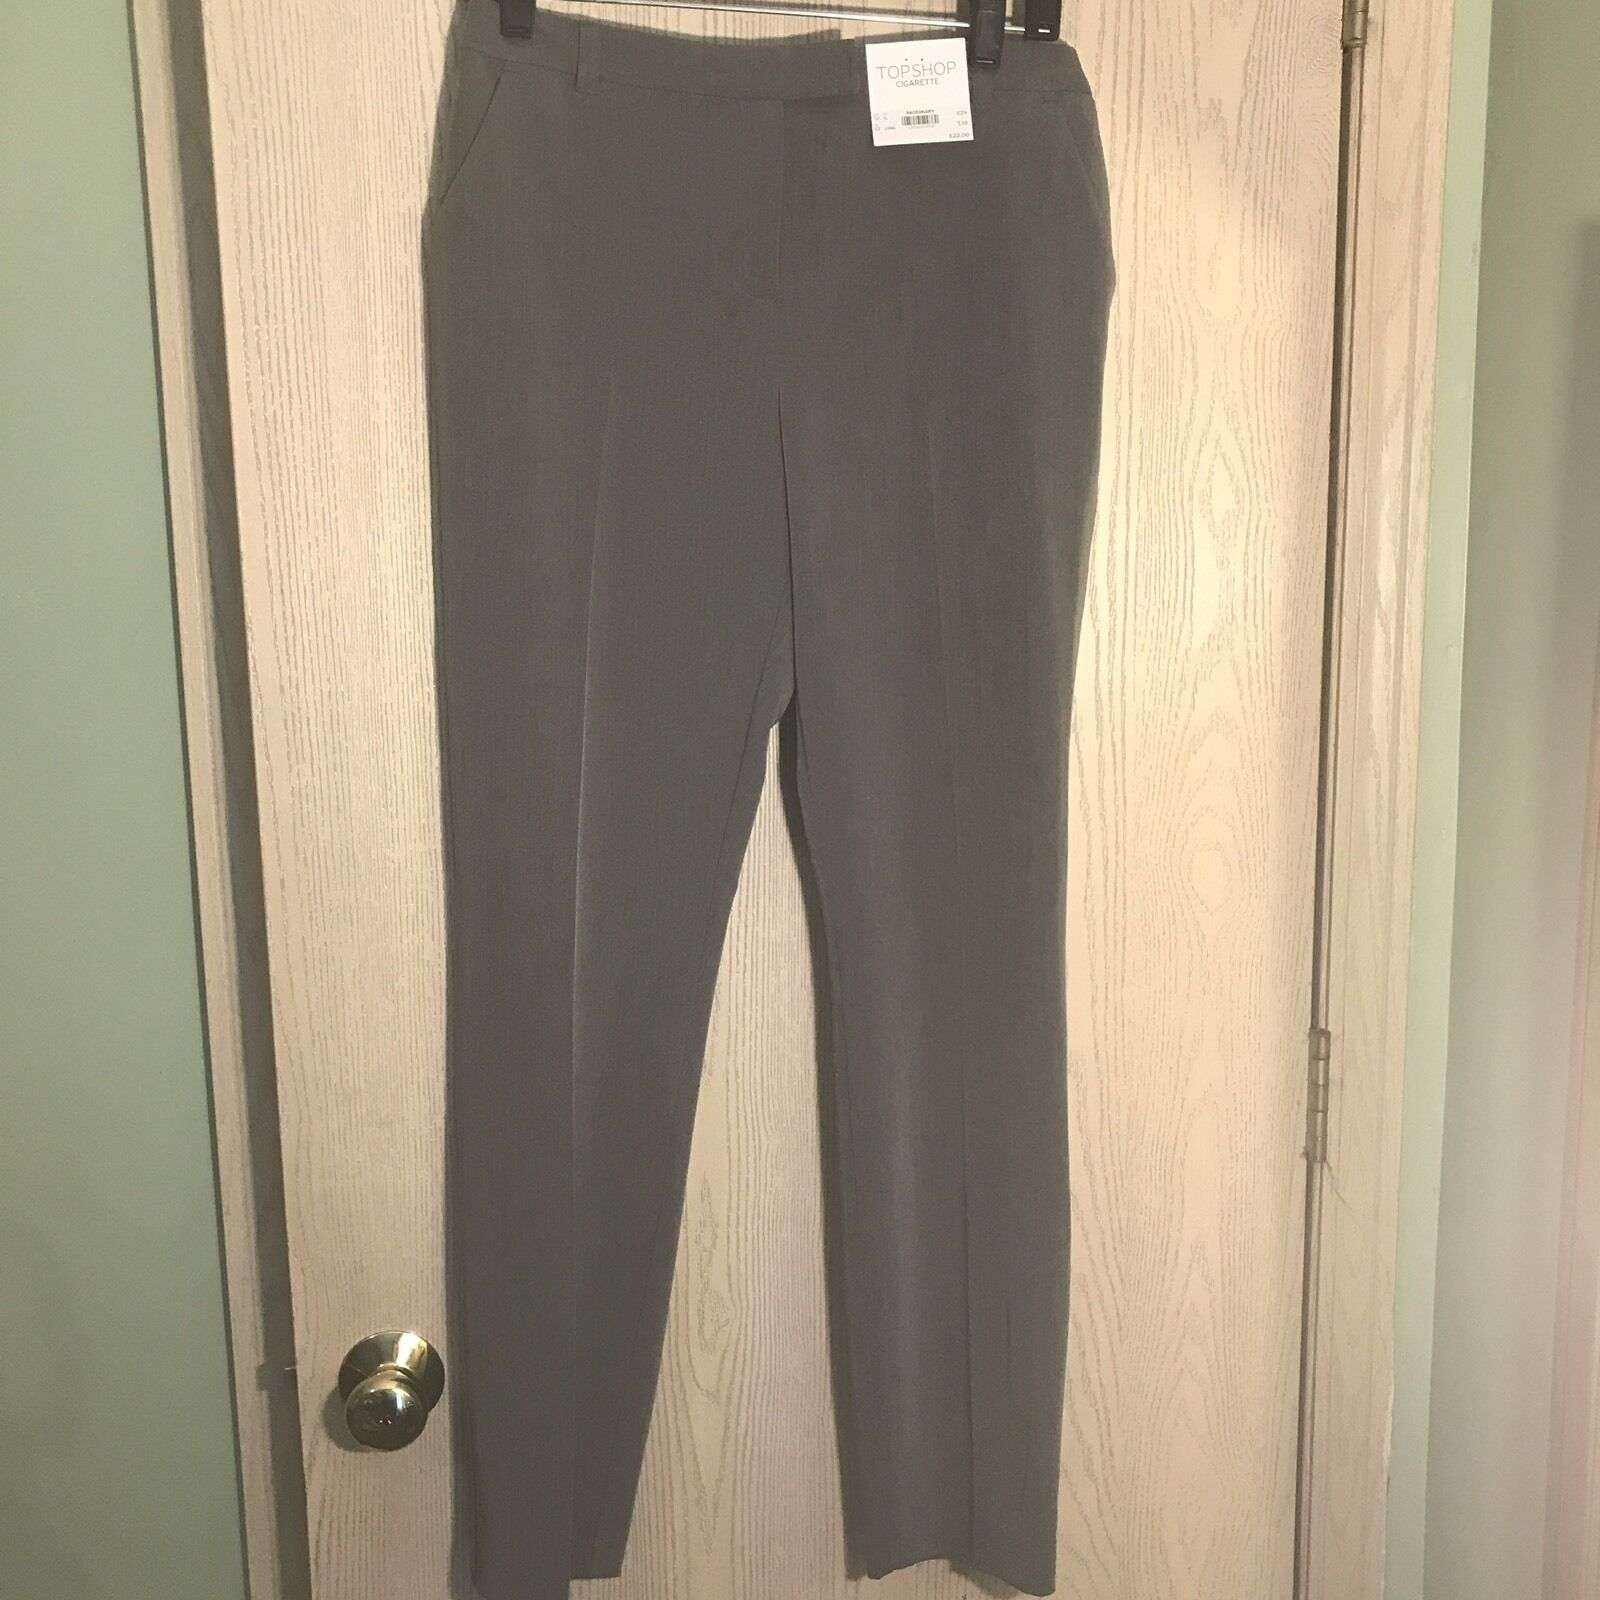 Topshop Skinny Cigarette Trousers Size 10 Long NWT